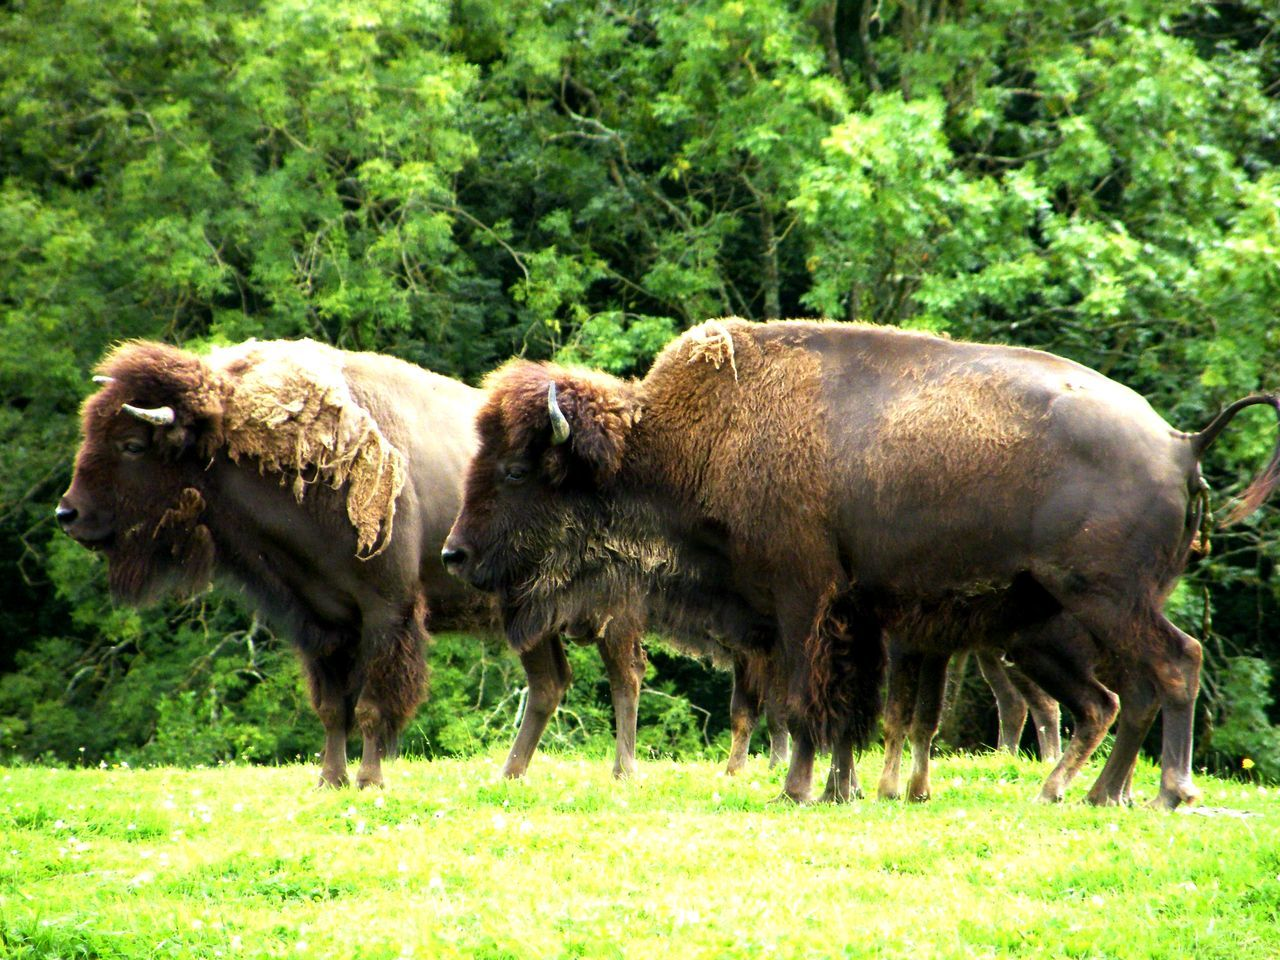 Animal Themes Beauty In Nature Bison Day Domestic Animals European Bison Field Grass Grazing Livestock Mammal Nature No People Outdoors